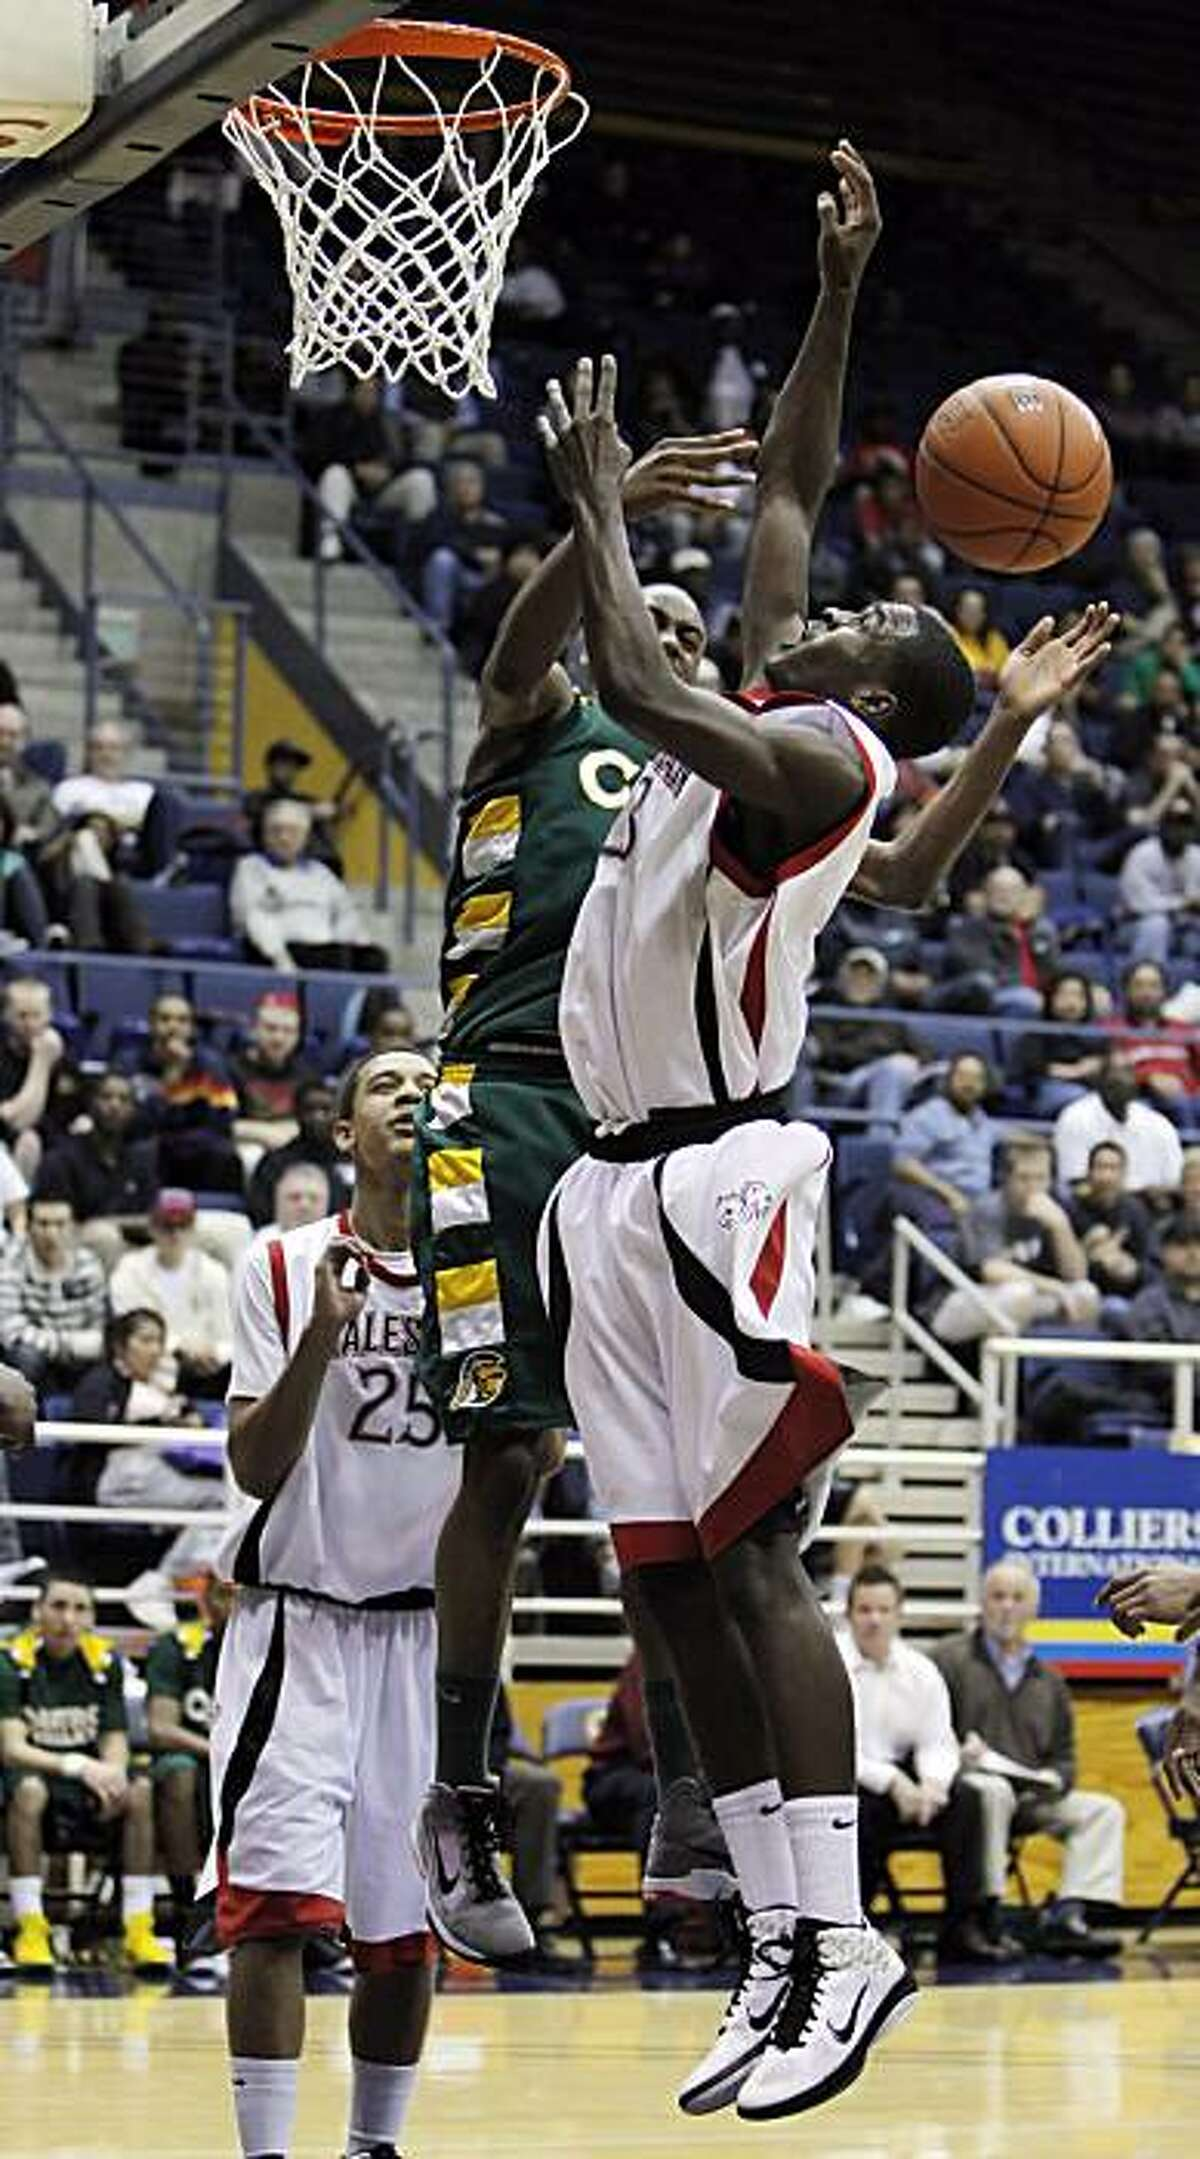 Salesian's Jabari Bird tries to bring in a rebound in the first half. The Salesian Pride takes on the Castro Valley Trojans as part of the Martin Luther King Classic basketball tournament at Haas Pavilion on the UC Berkeley Campus in Berkeley, Calif., on Monday, January 17, 2011.